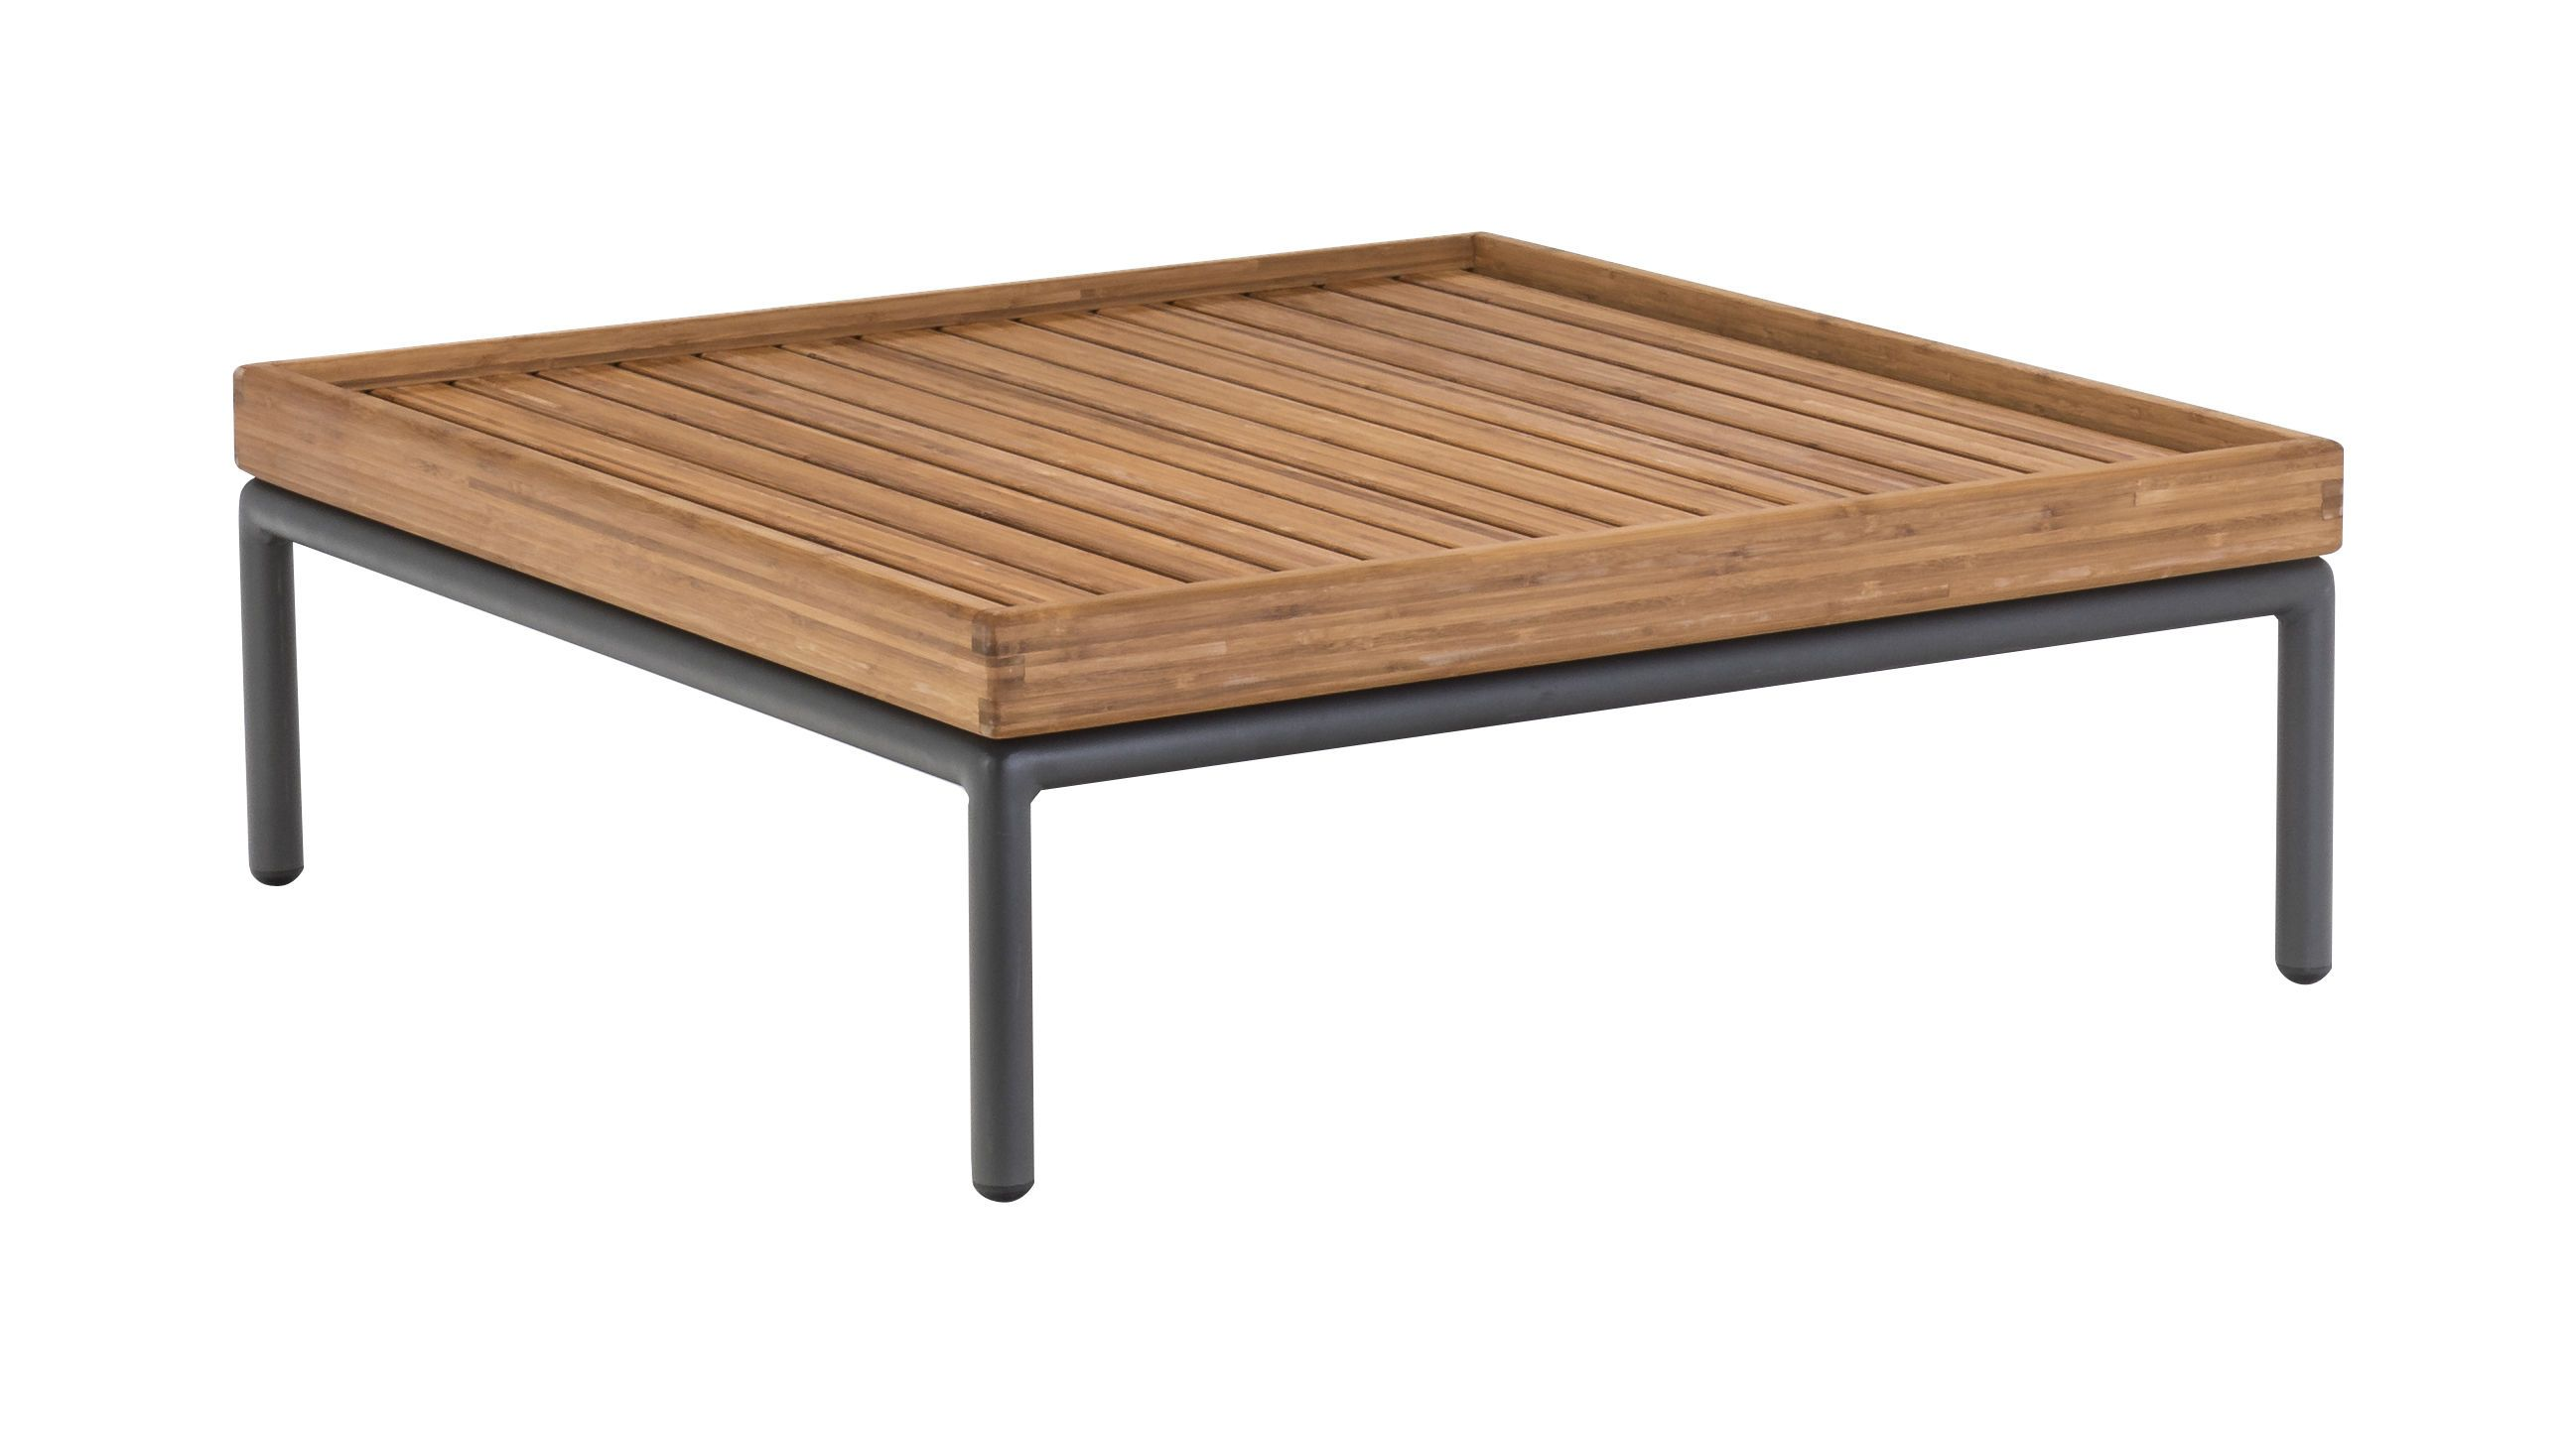 Table Basse Level Houe Bois Naturel Made In Design Leather